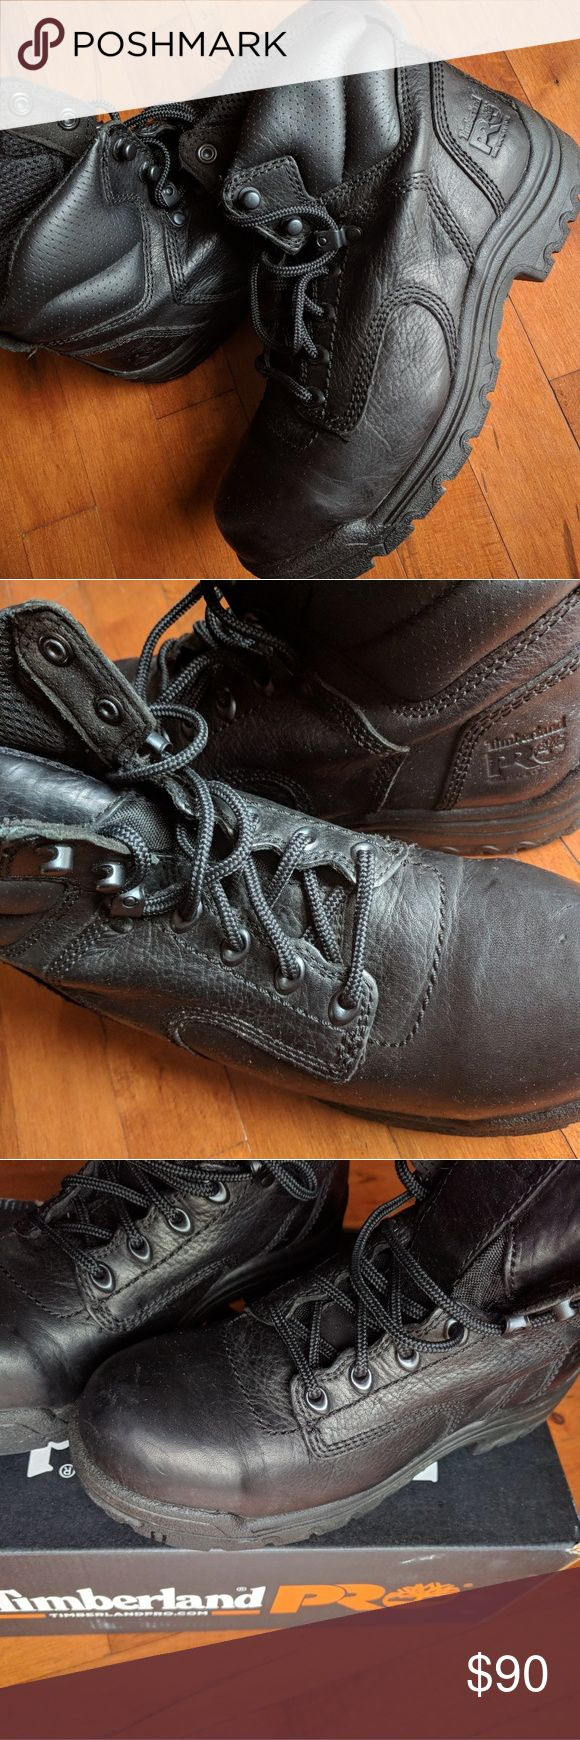 Timberland Pro Series workboots Black Timberland Pro ladies safety shoes. Worn only a few times. Safety toe. EUC Timberland Shoes